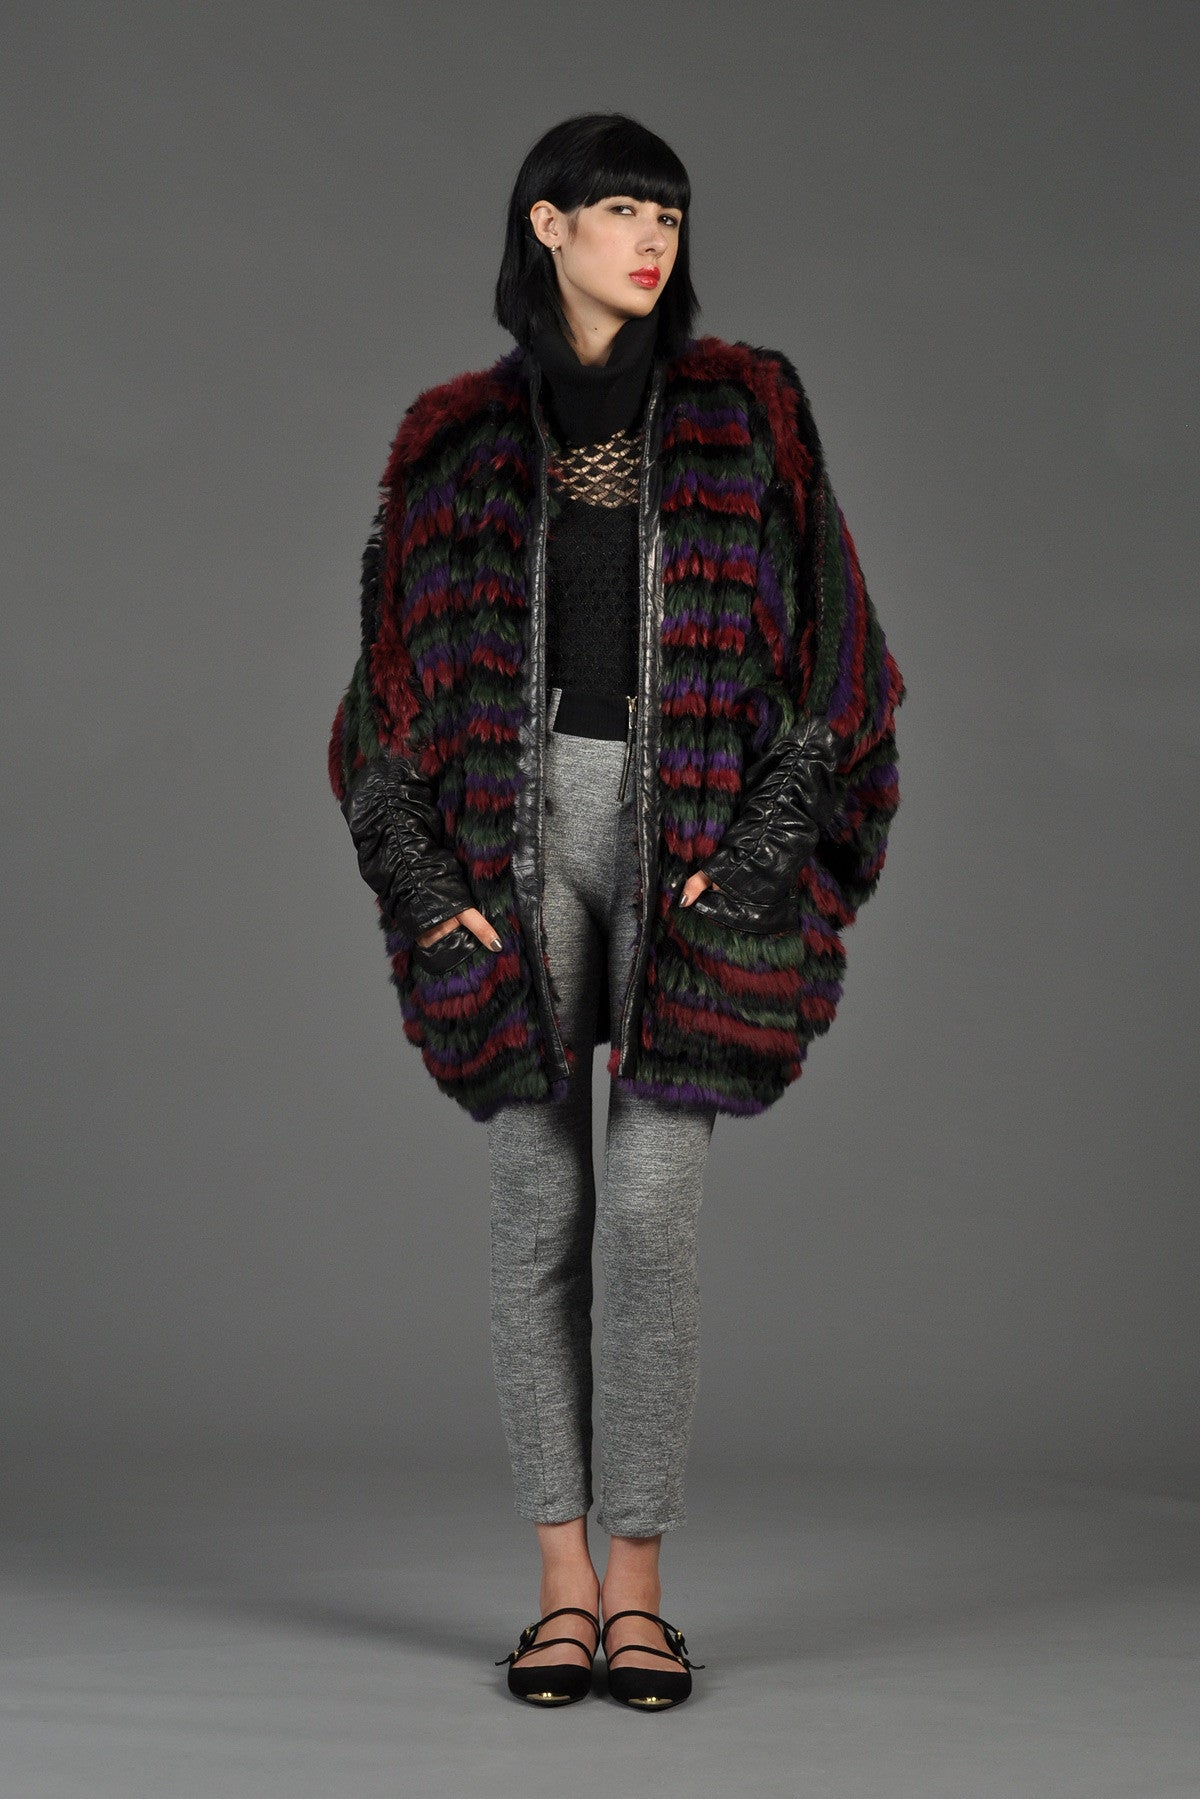 Striped Fox Fur   Knit Coat with Leather Sleeves | BUSTOWN MODERN